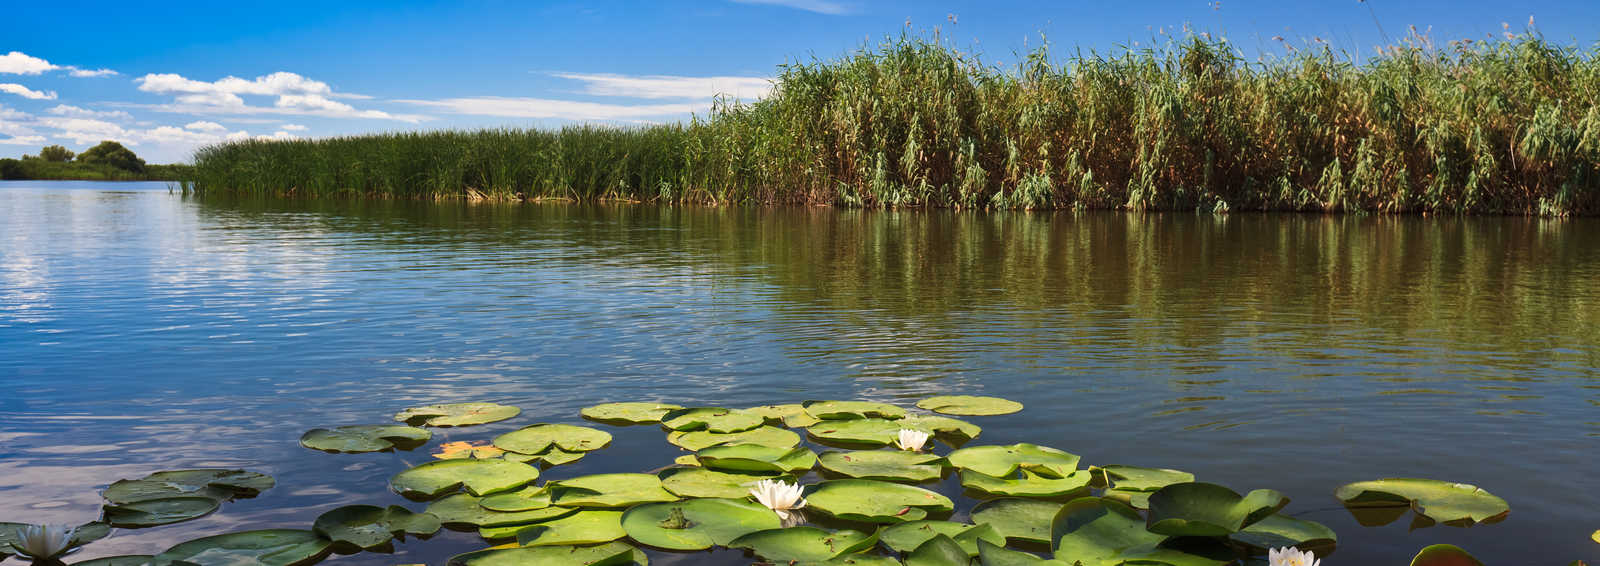 Lake on the danube Delta, Hungary